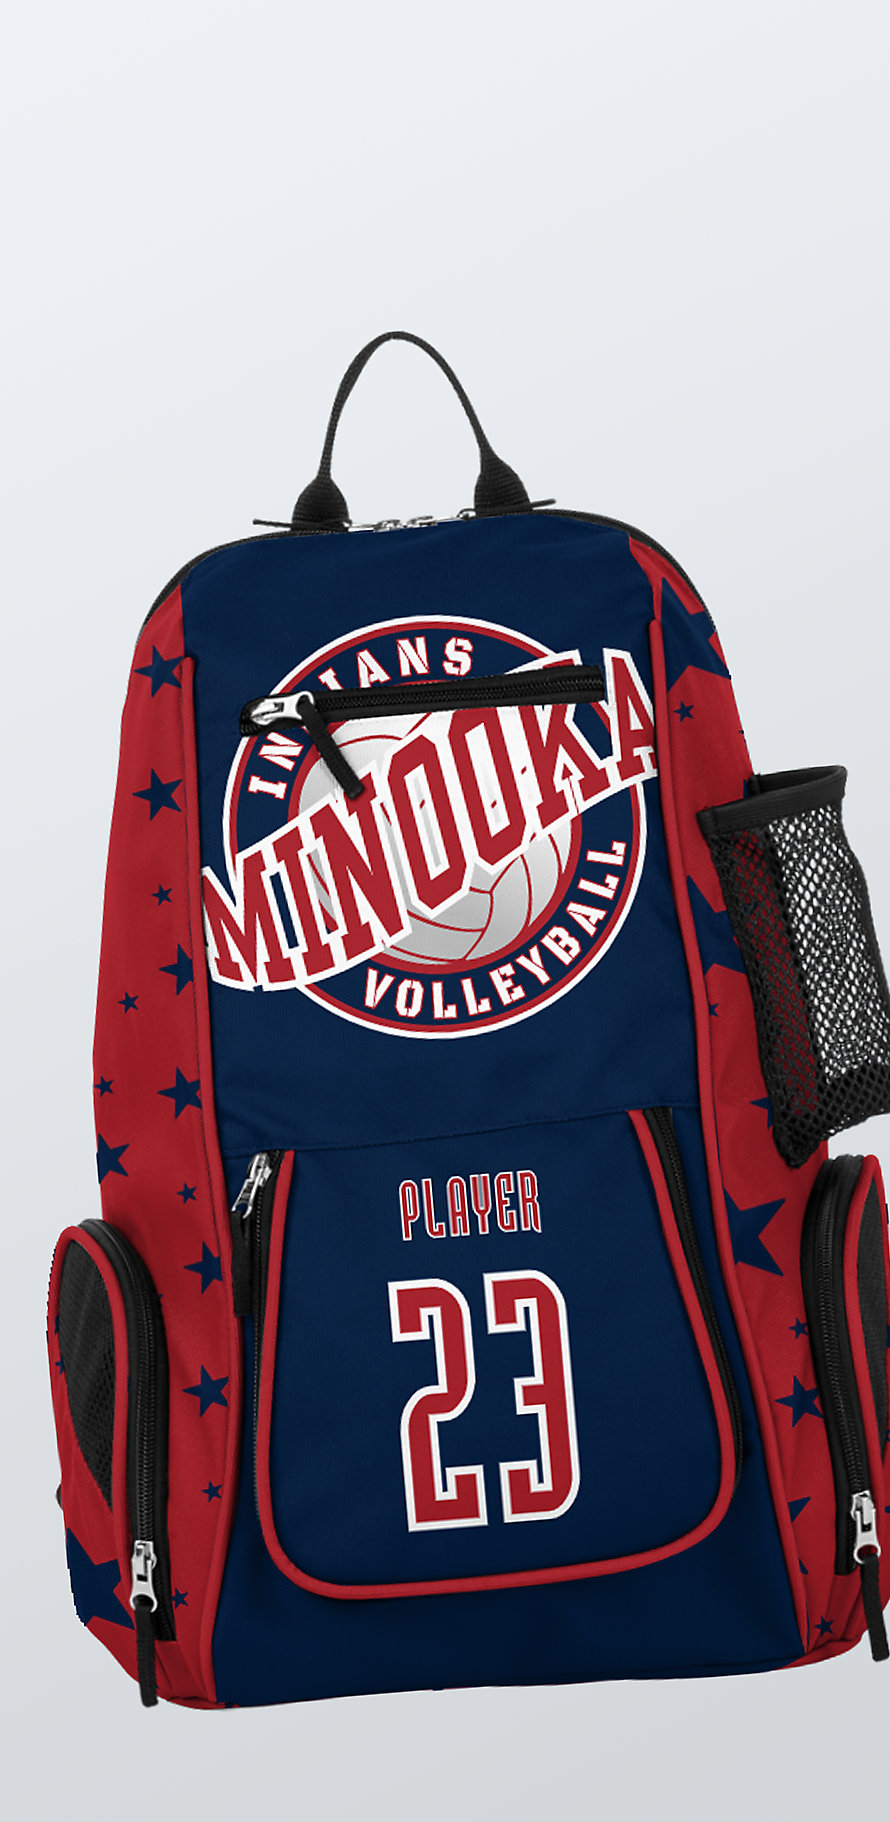 Customize Volleyball Bags